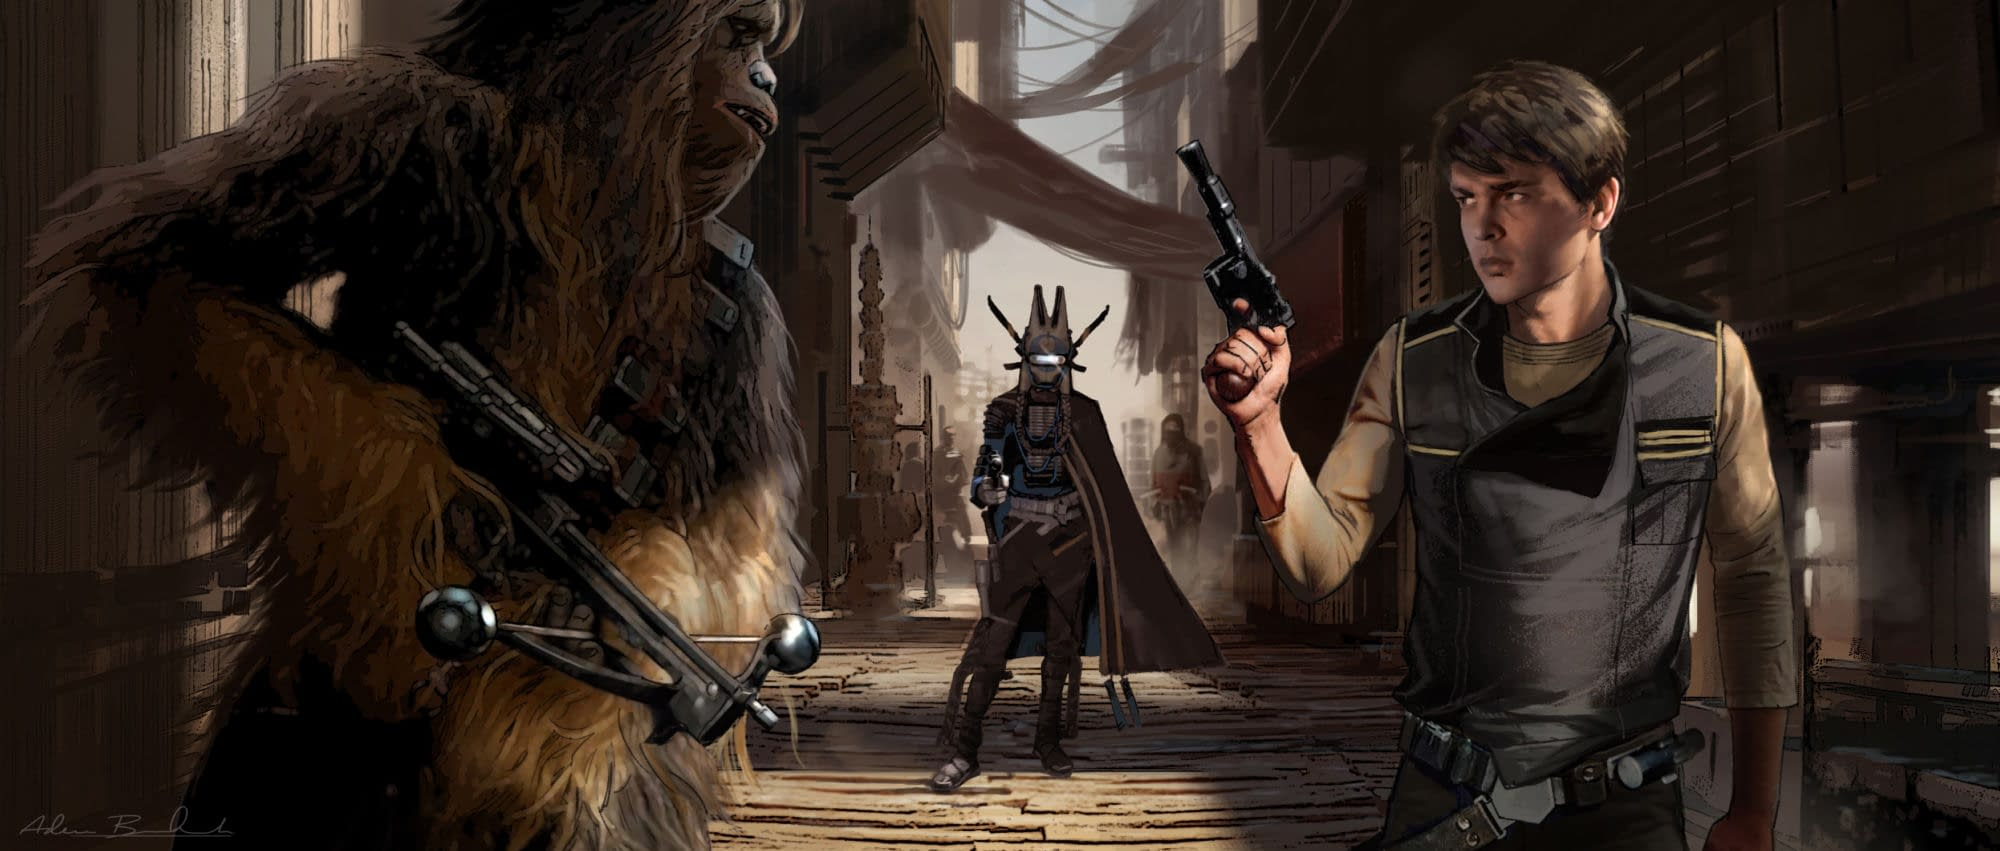 Solo: A Star Wars Story – Concept Art, A Deleted Scene, and a Featurette